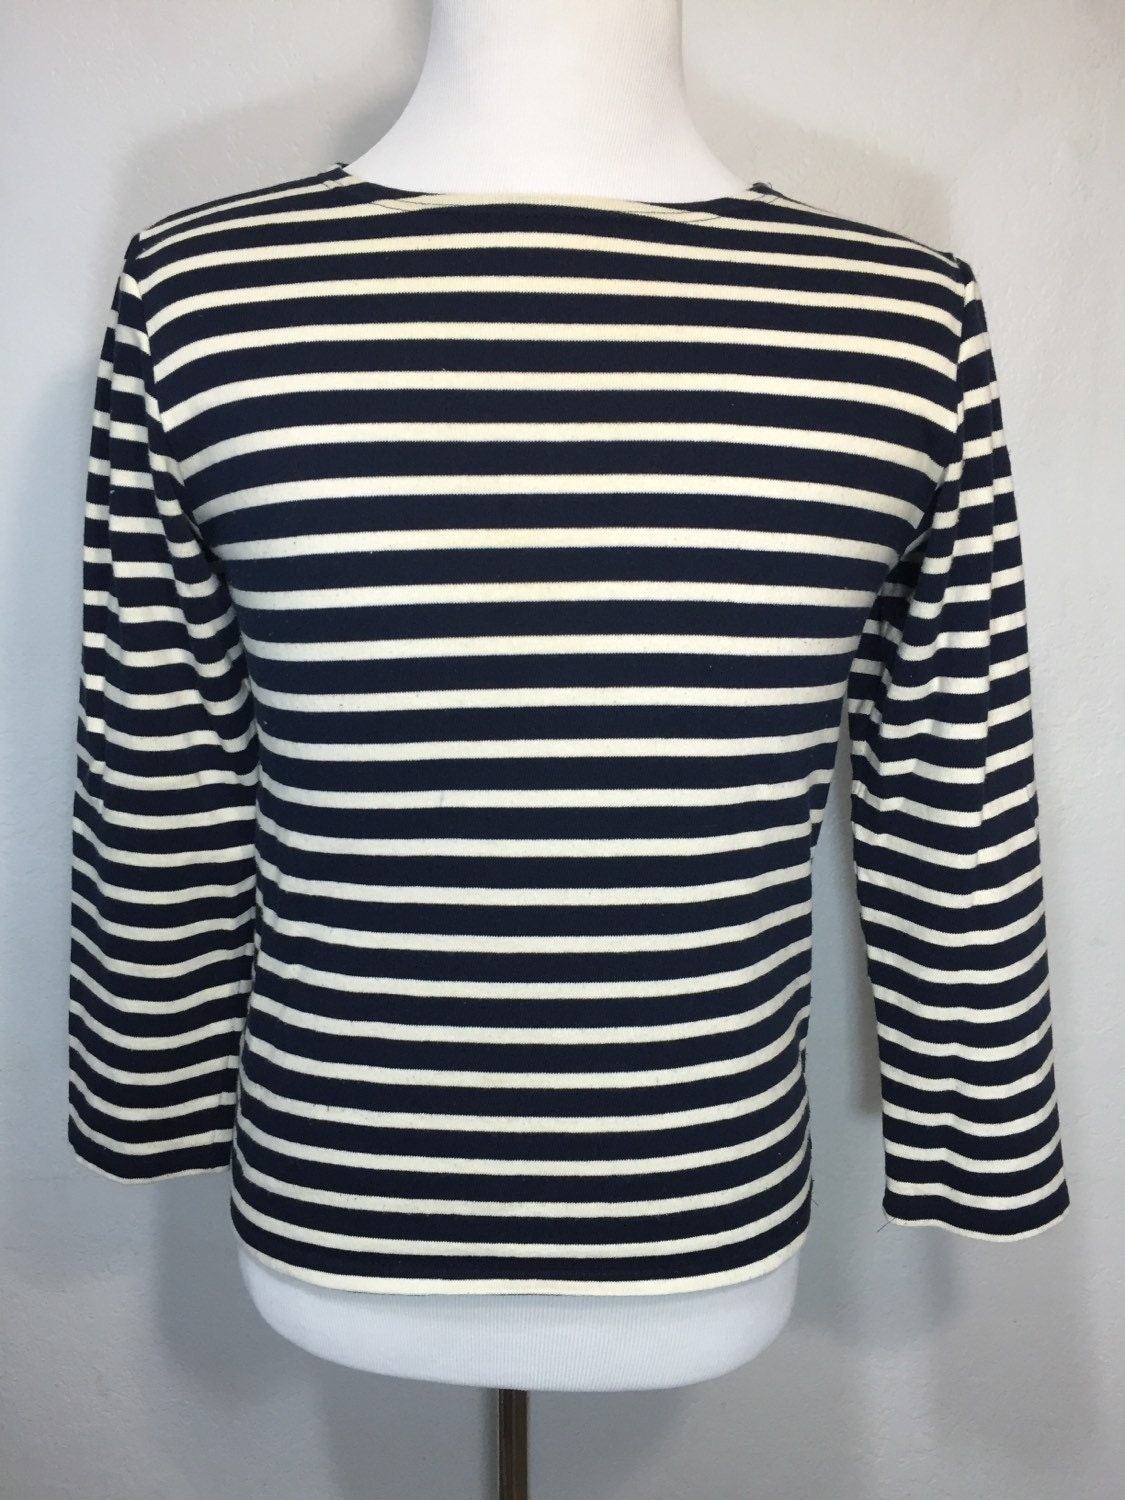 Saint james striped 4 3 sleeve shirt boat neck made in france for St james striped shirt